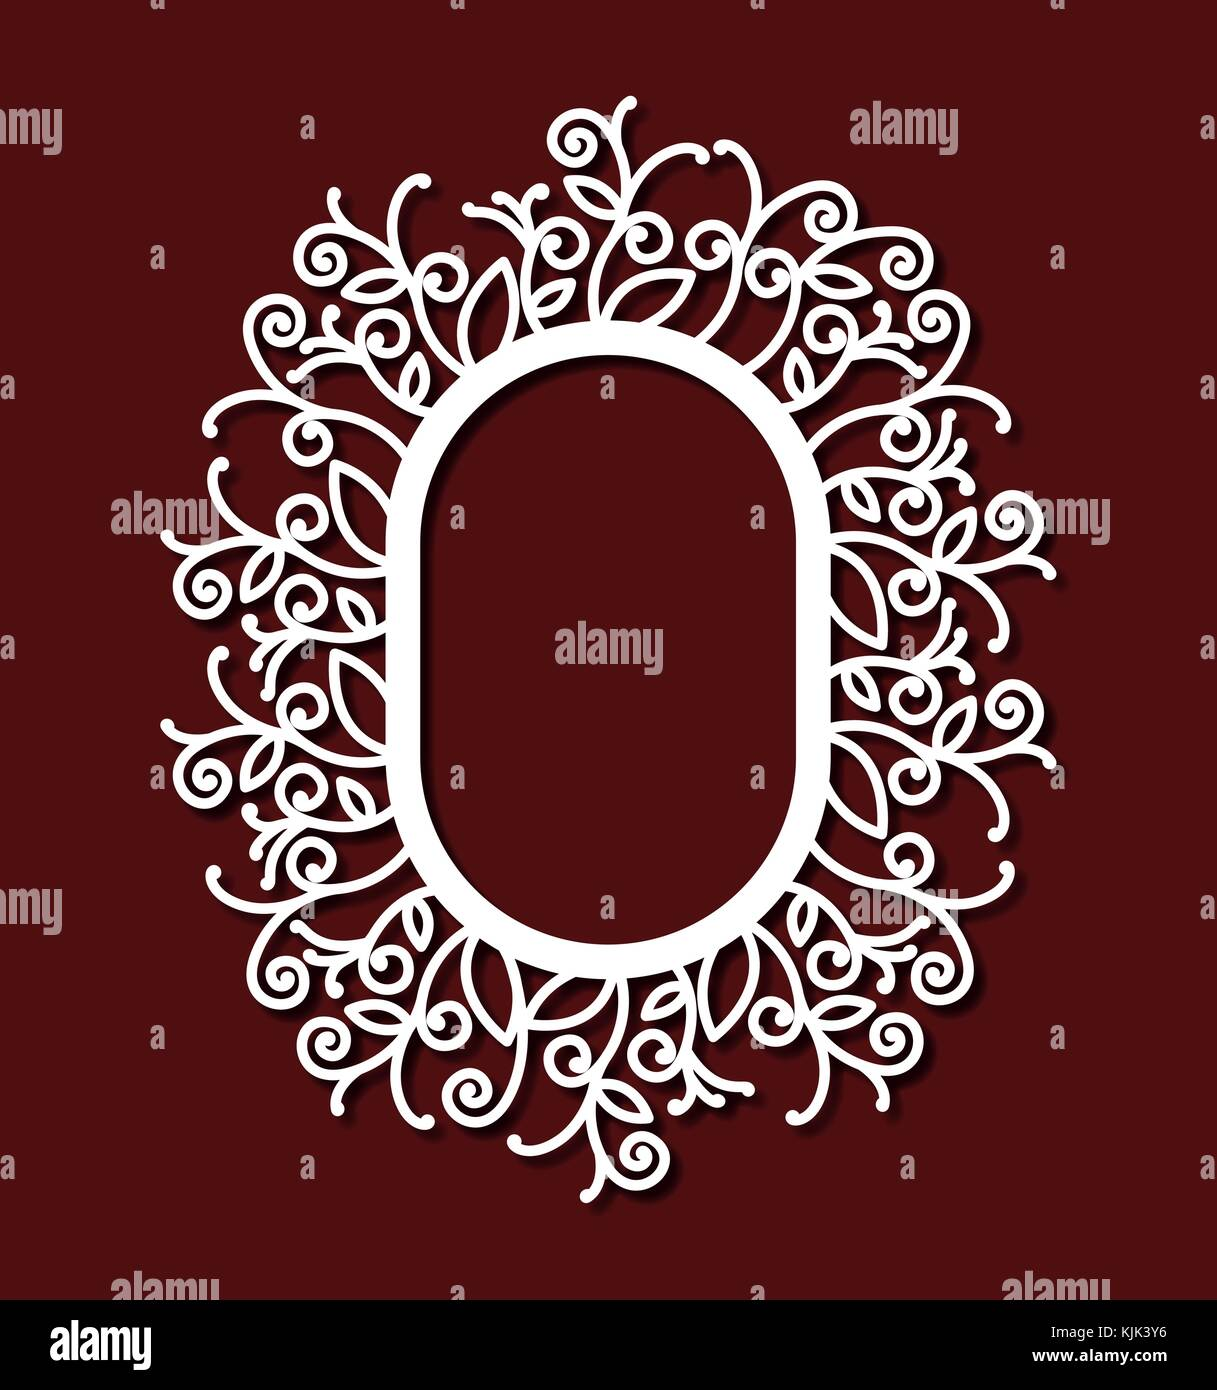 5b1f45451fdb laser cutting abstract oval frame with floral external border in dark red  background - Stock Image